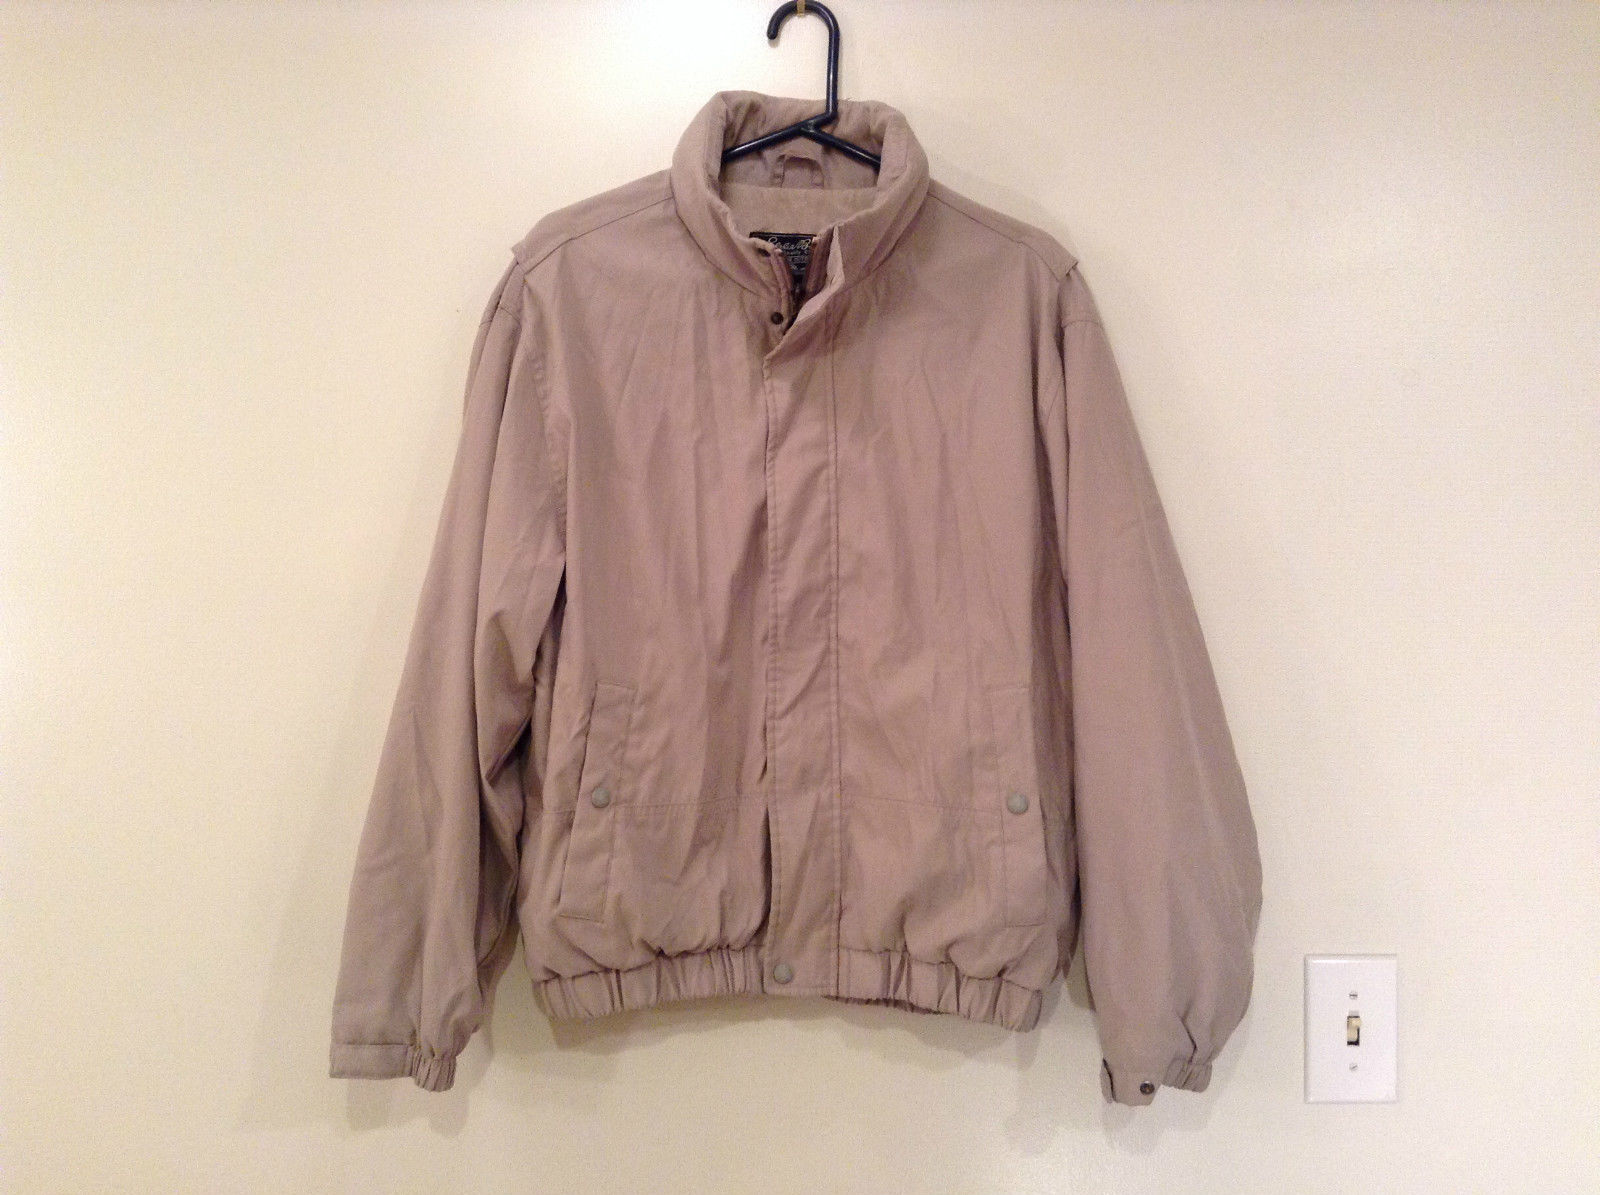 Tan Eddie Bauer Lined Jacket 2 Front Pockets 1 Inside Pocket Zip Closure Size M